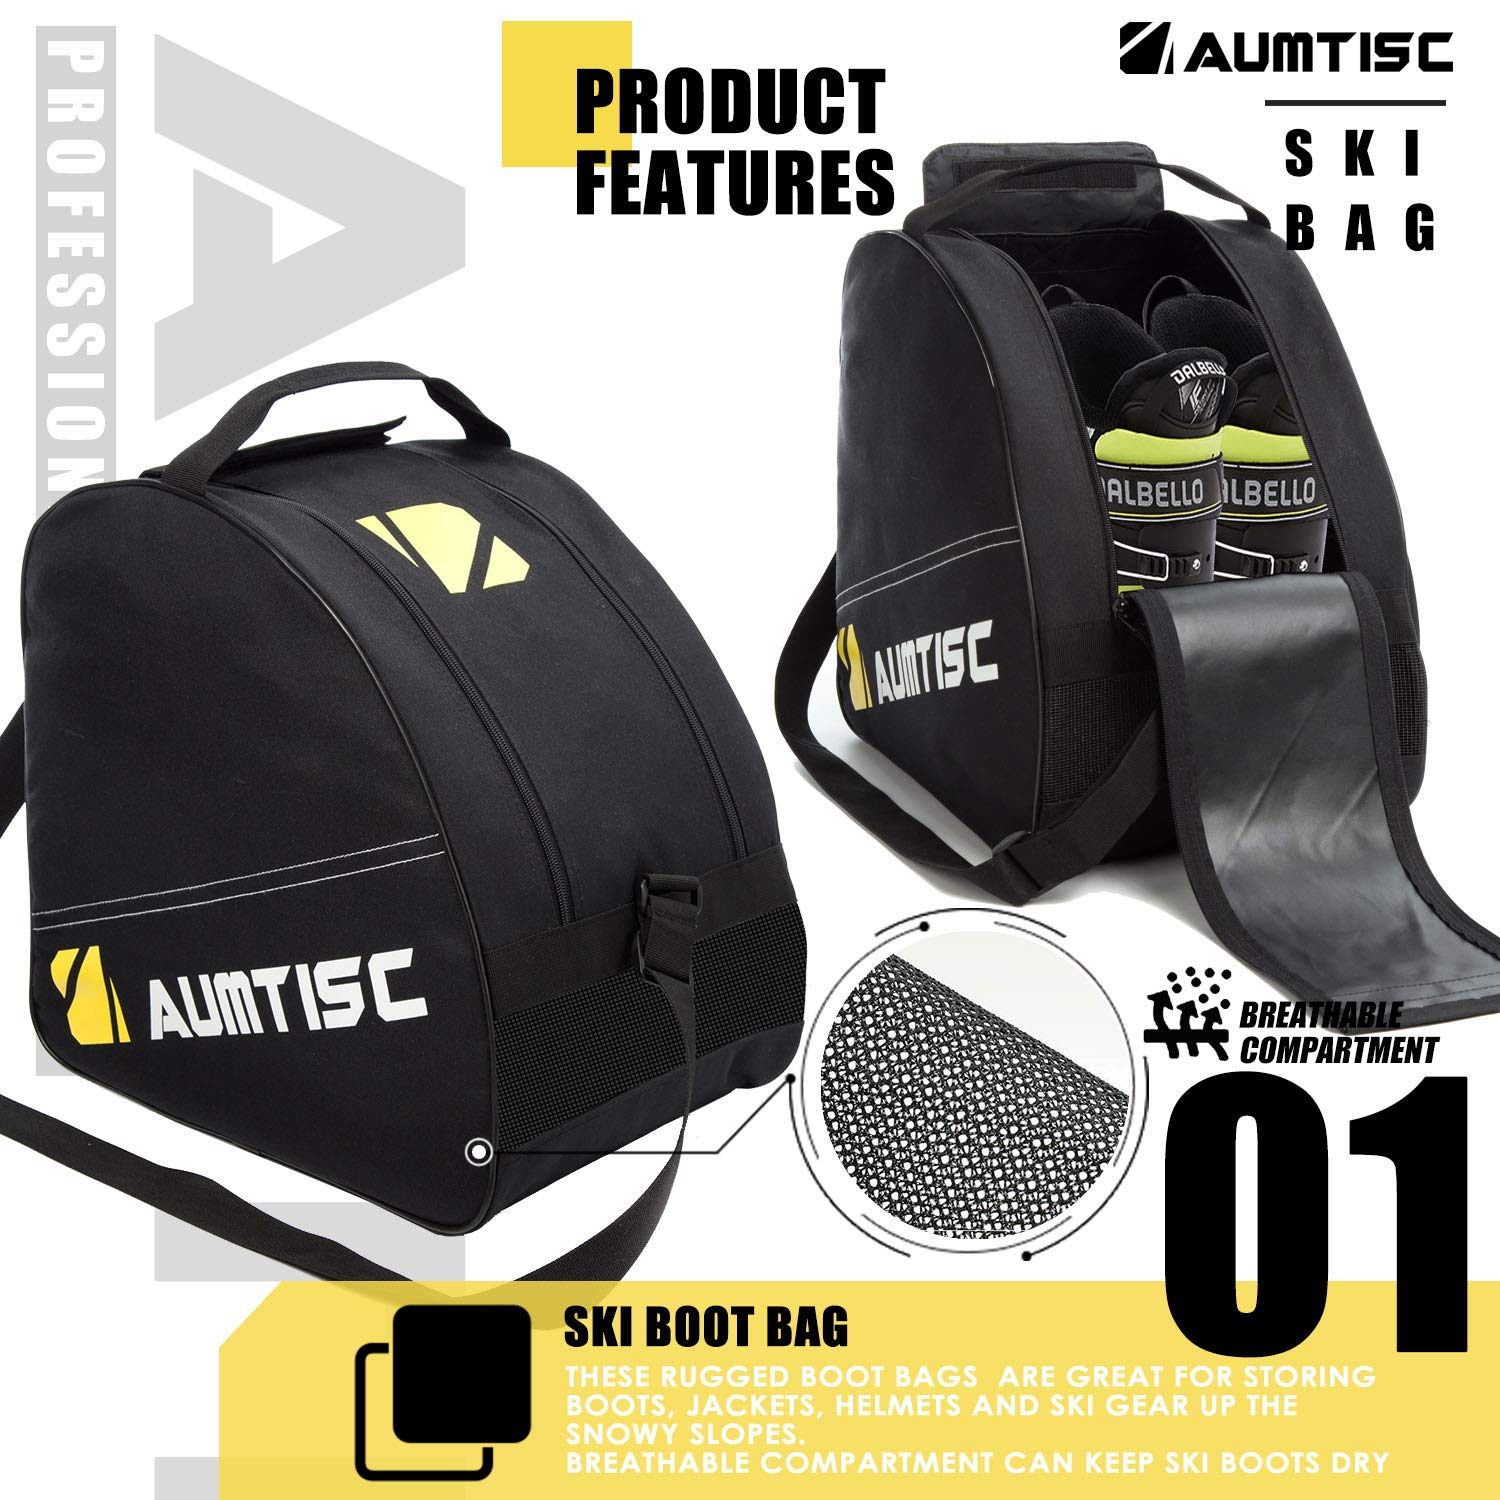 36db9afdf0 Amazon.com   Aumtisc Ski Bag and Boot Bag Combo for 1 Pair of Ski and Boots